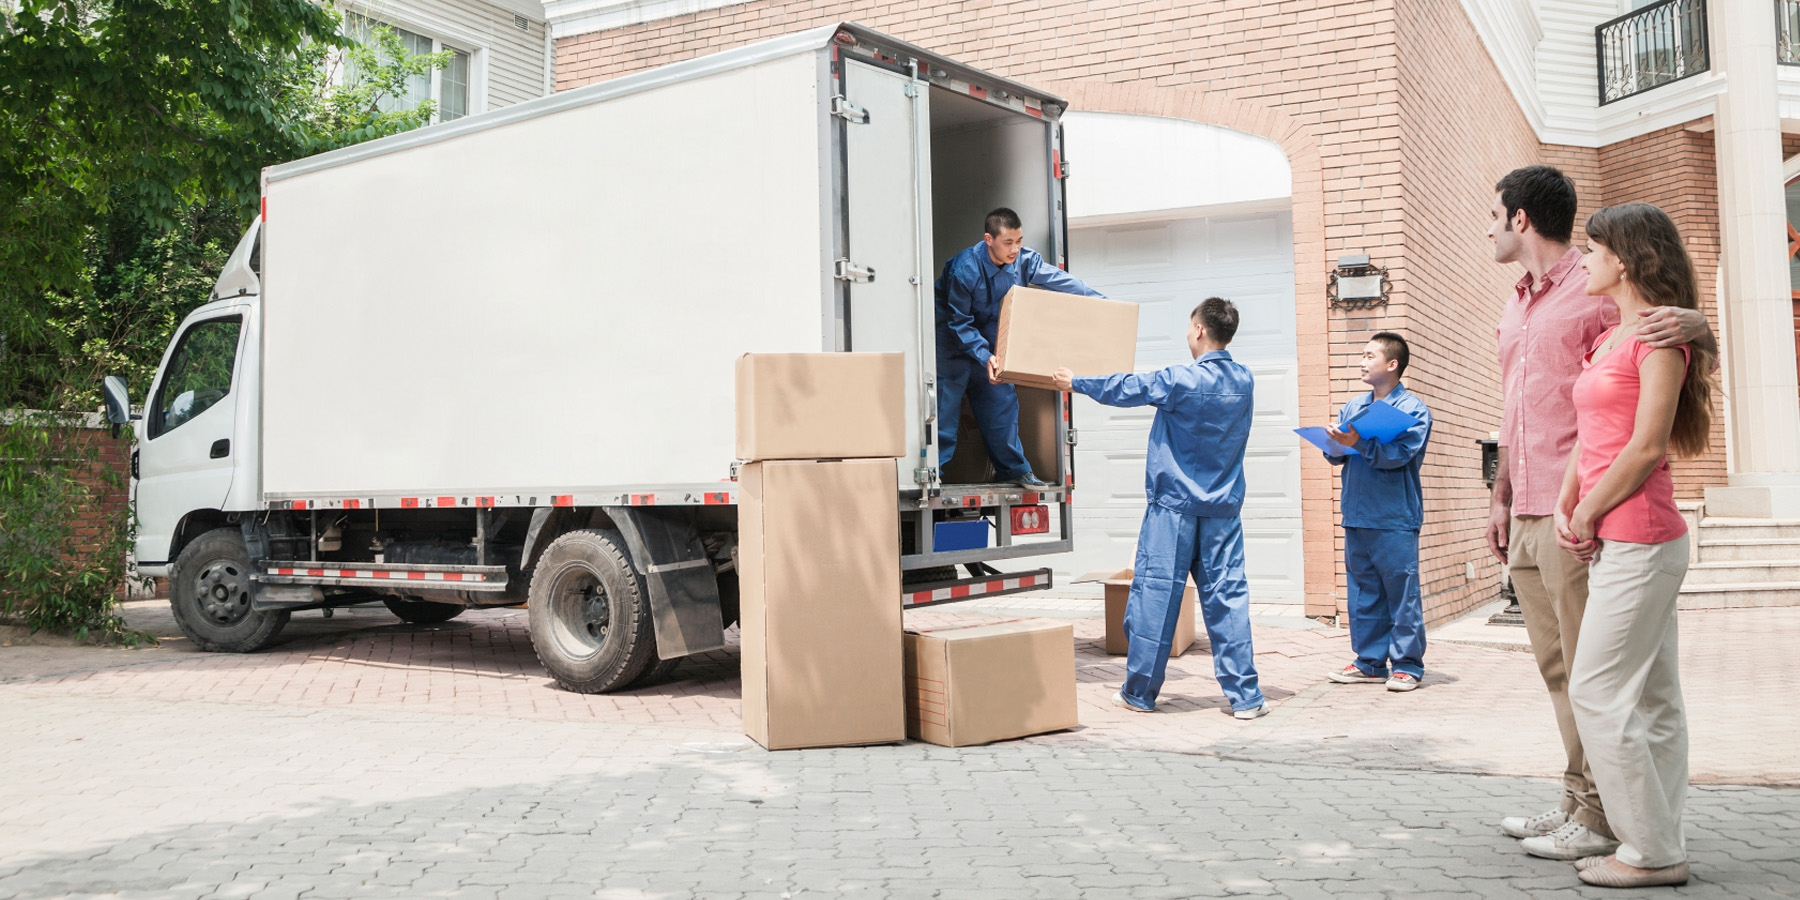 Finding a Competent Moving Services Provider